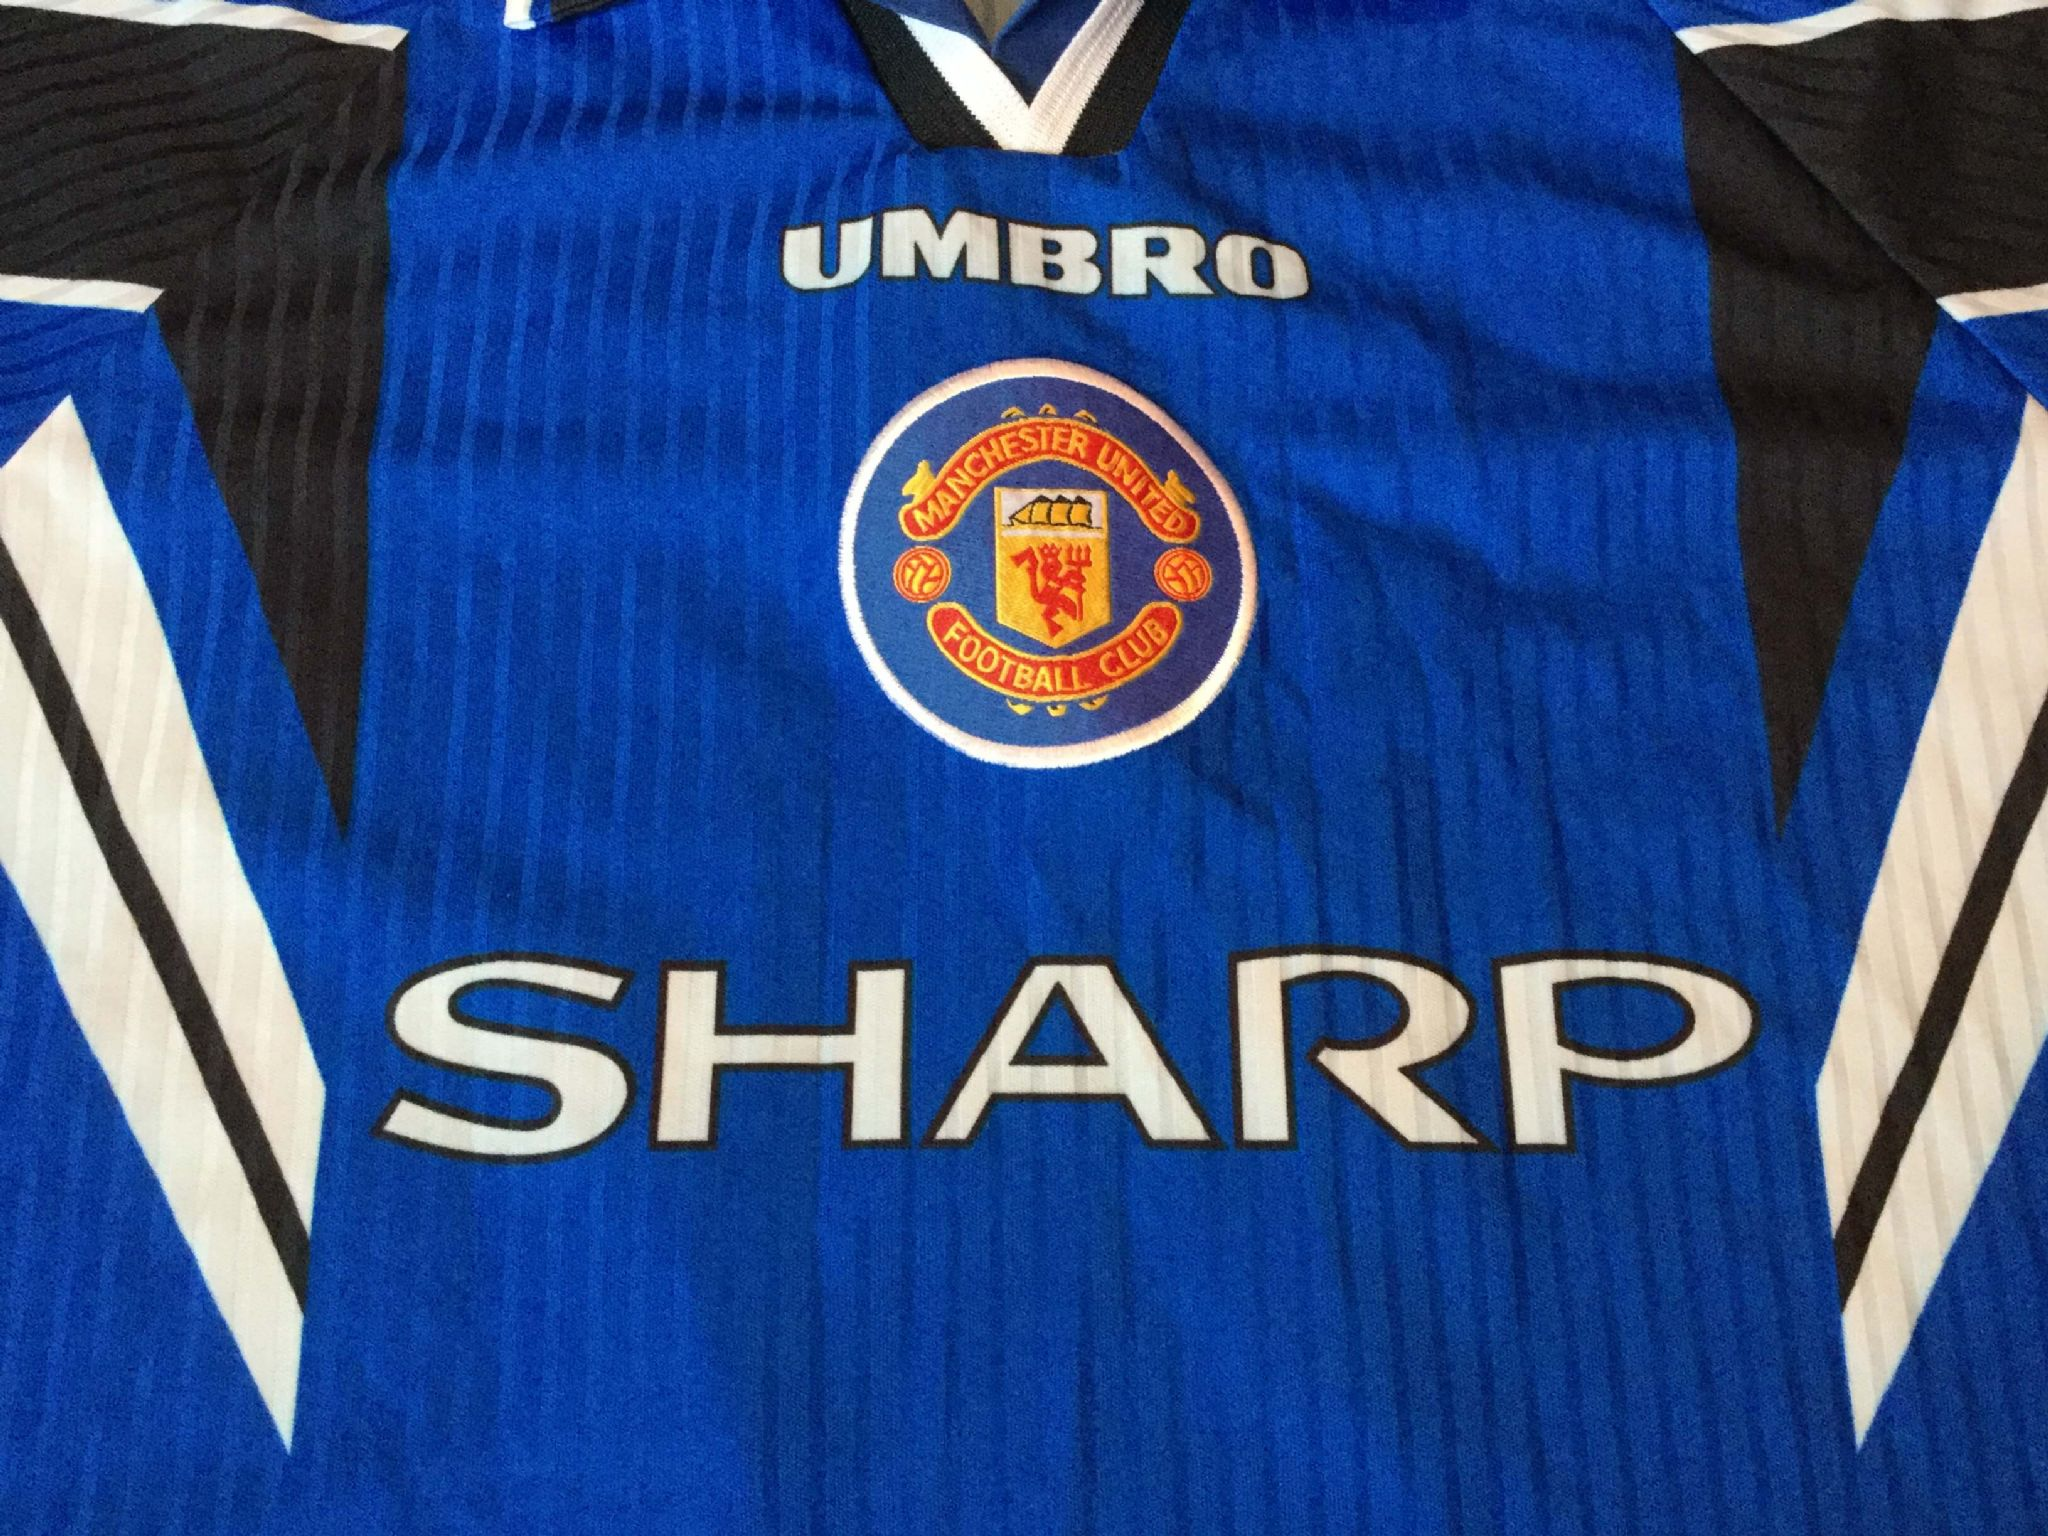 low priced 3bba8 5fcae Global Classic Football Shirts | 1996 Manchester United ...